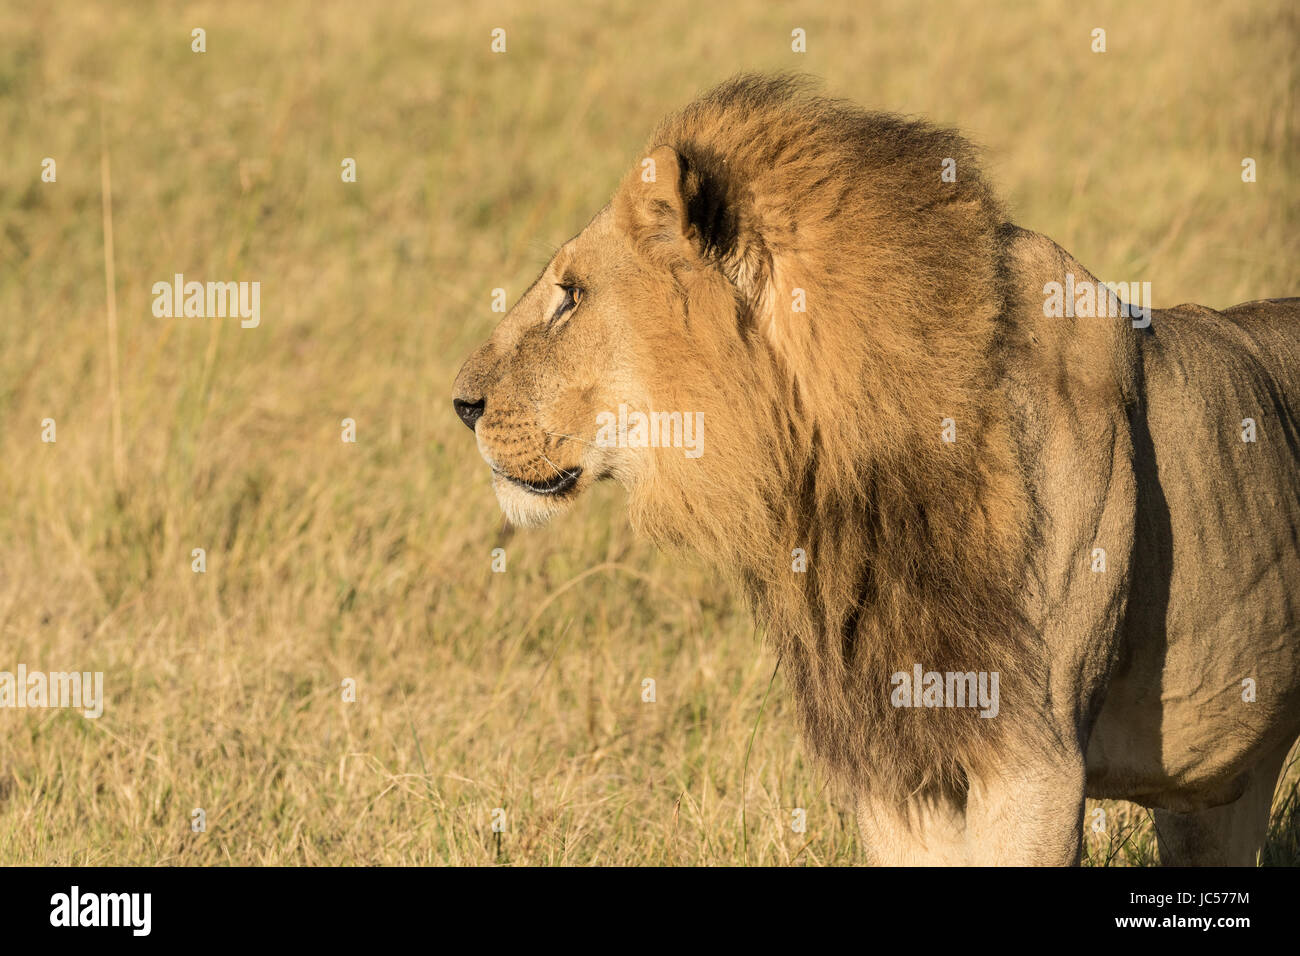 Profil de Lion Photo Stock